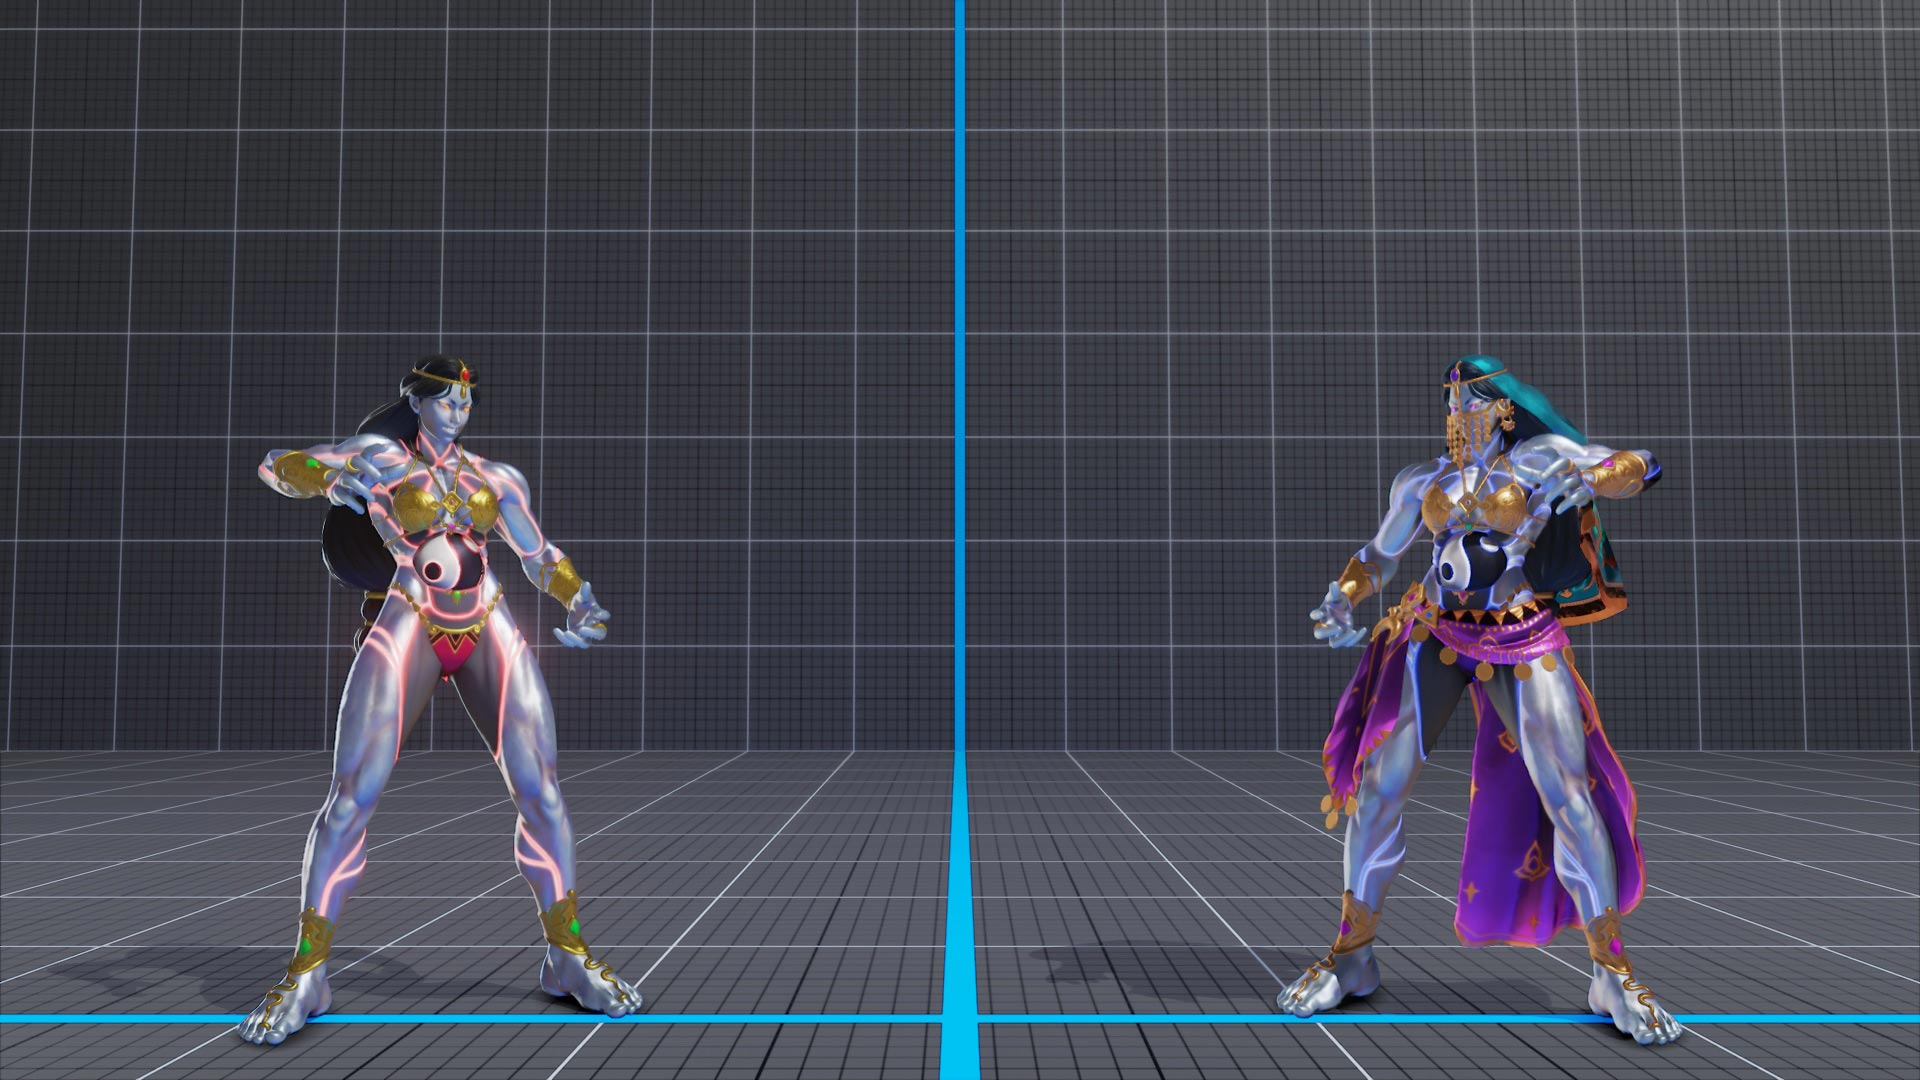 Seth new CPT costume colors 1 out of 5 image gallery